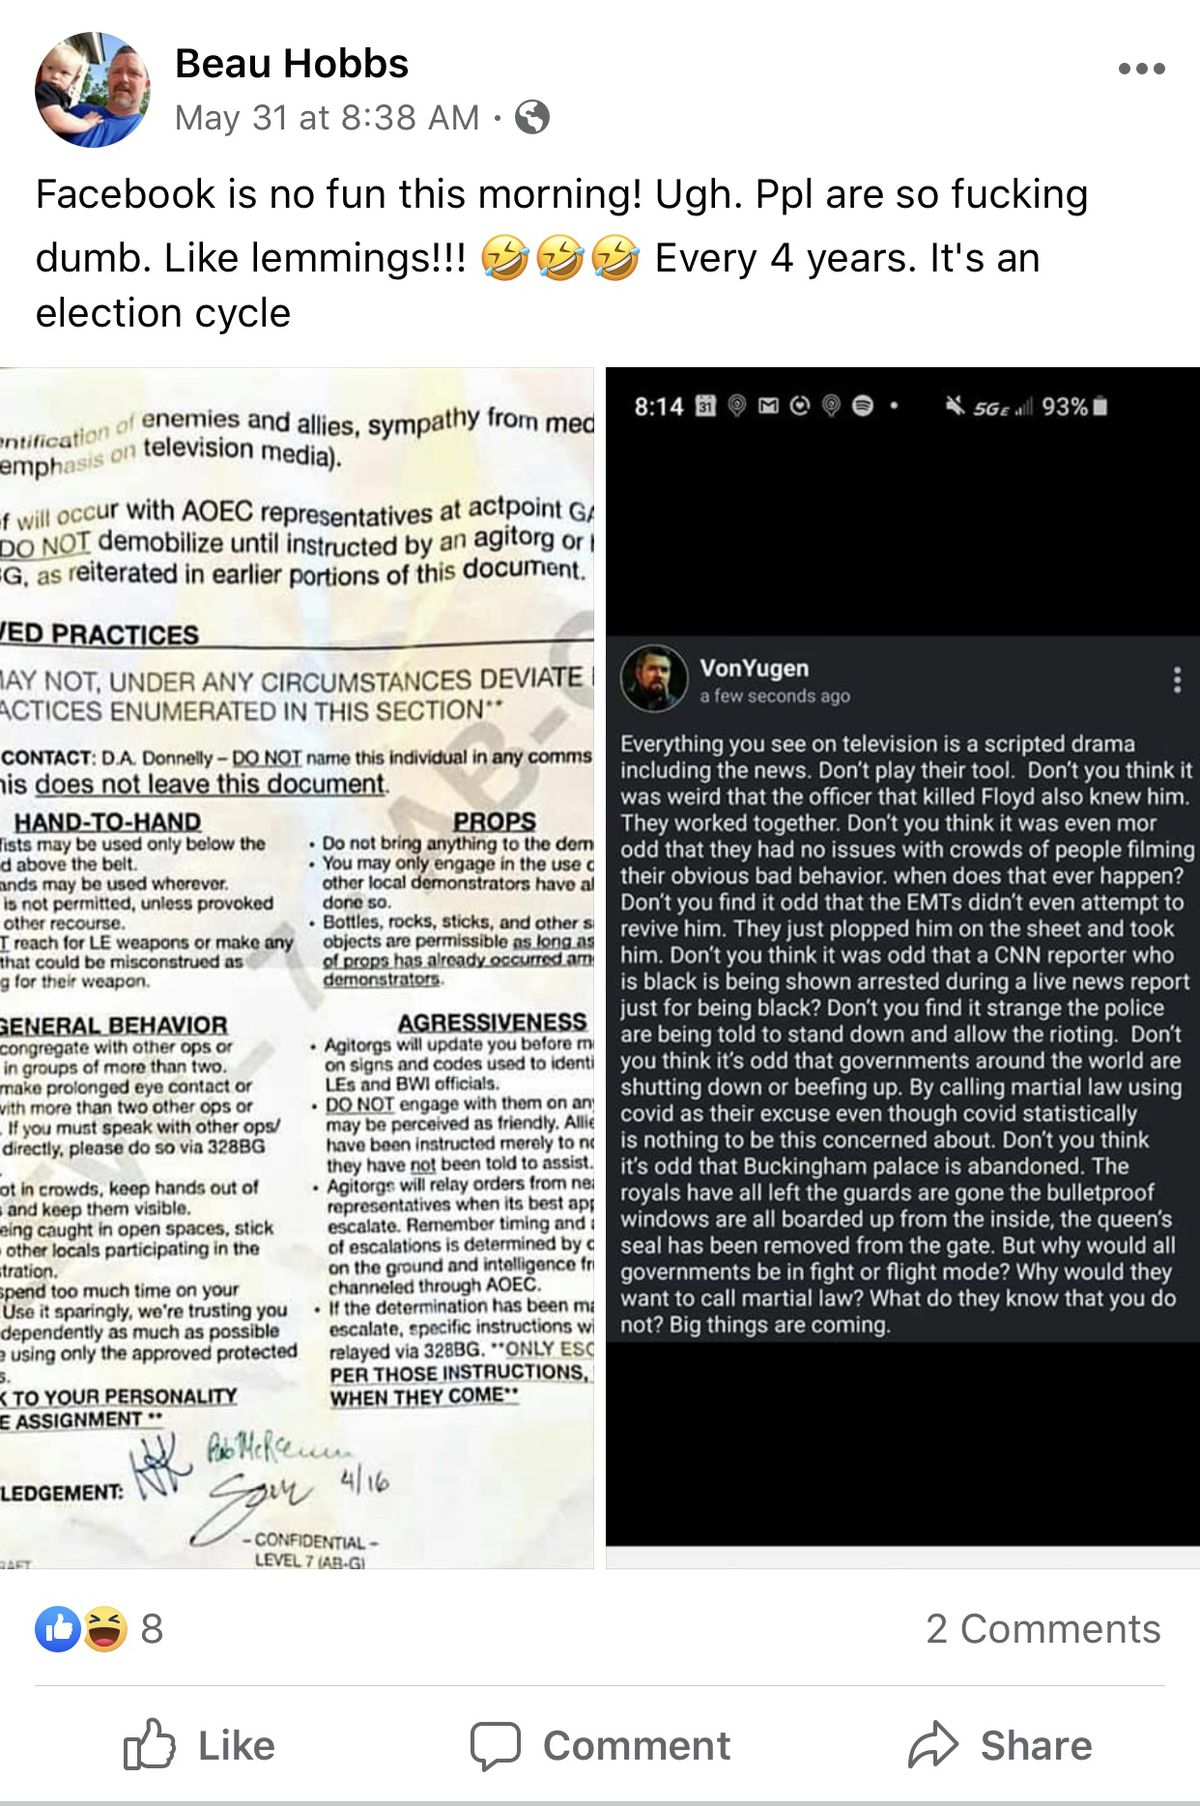 """Screenshots from Beau Hobb's Facebook showing a flyer purporting to show that the protest were organized by """"Friends of Democracy"""" and a post from VonYugen who says everything on the news is scripted"""